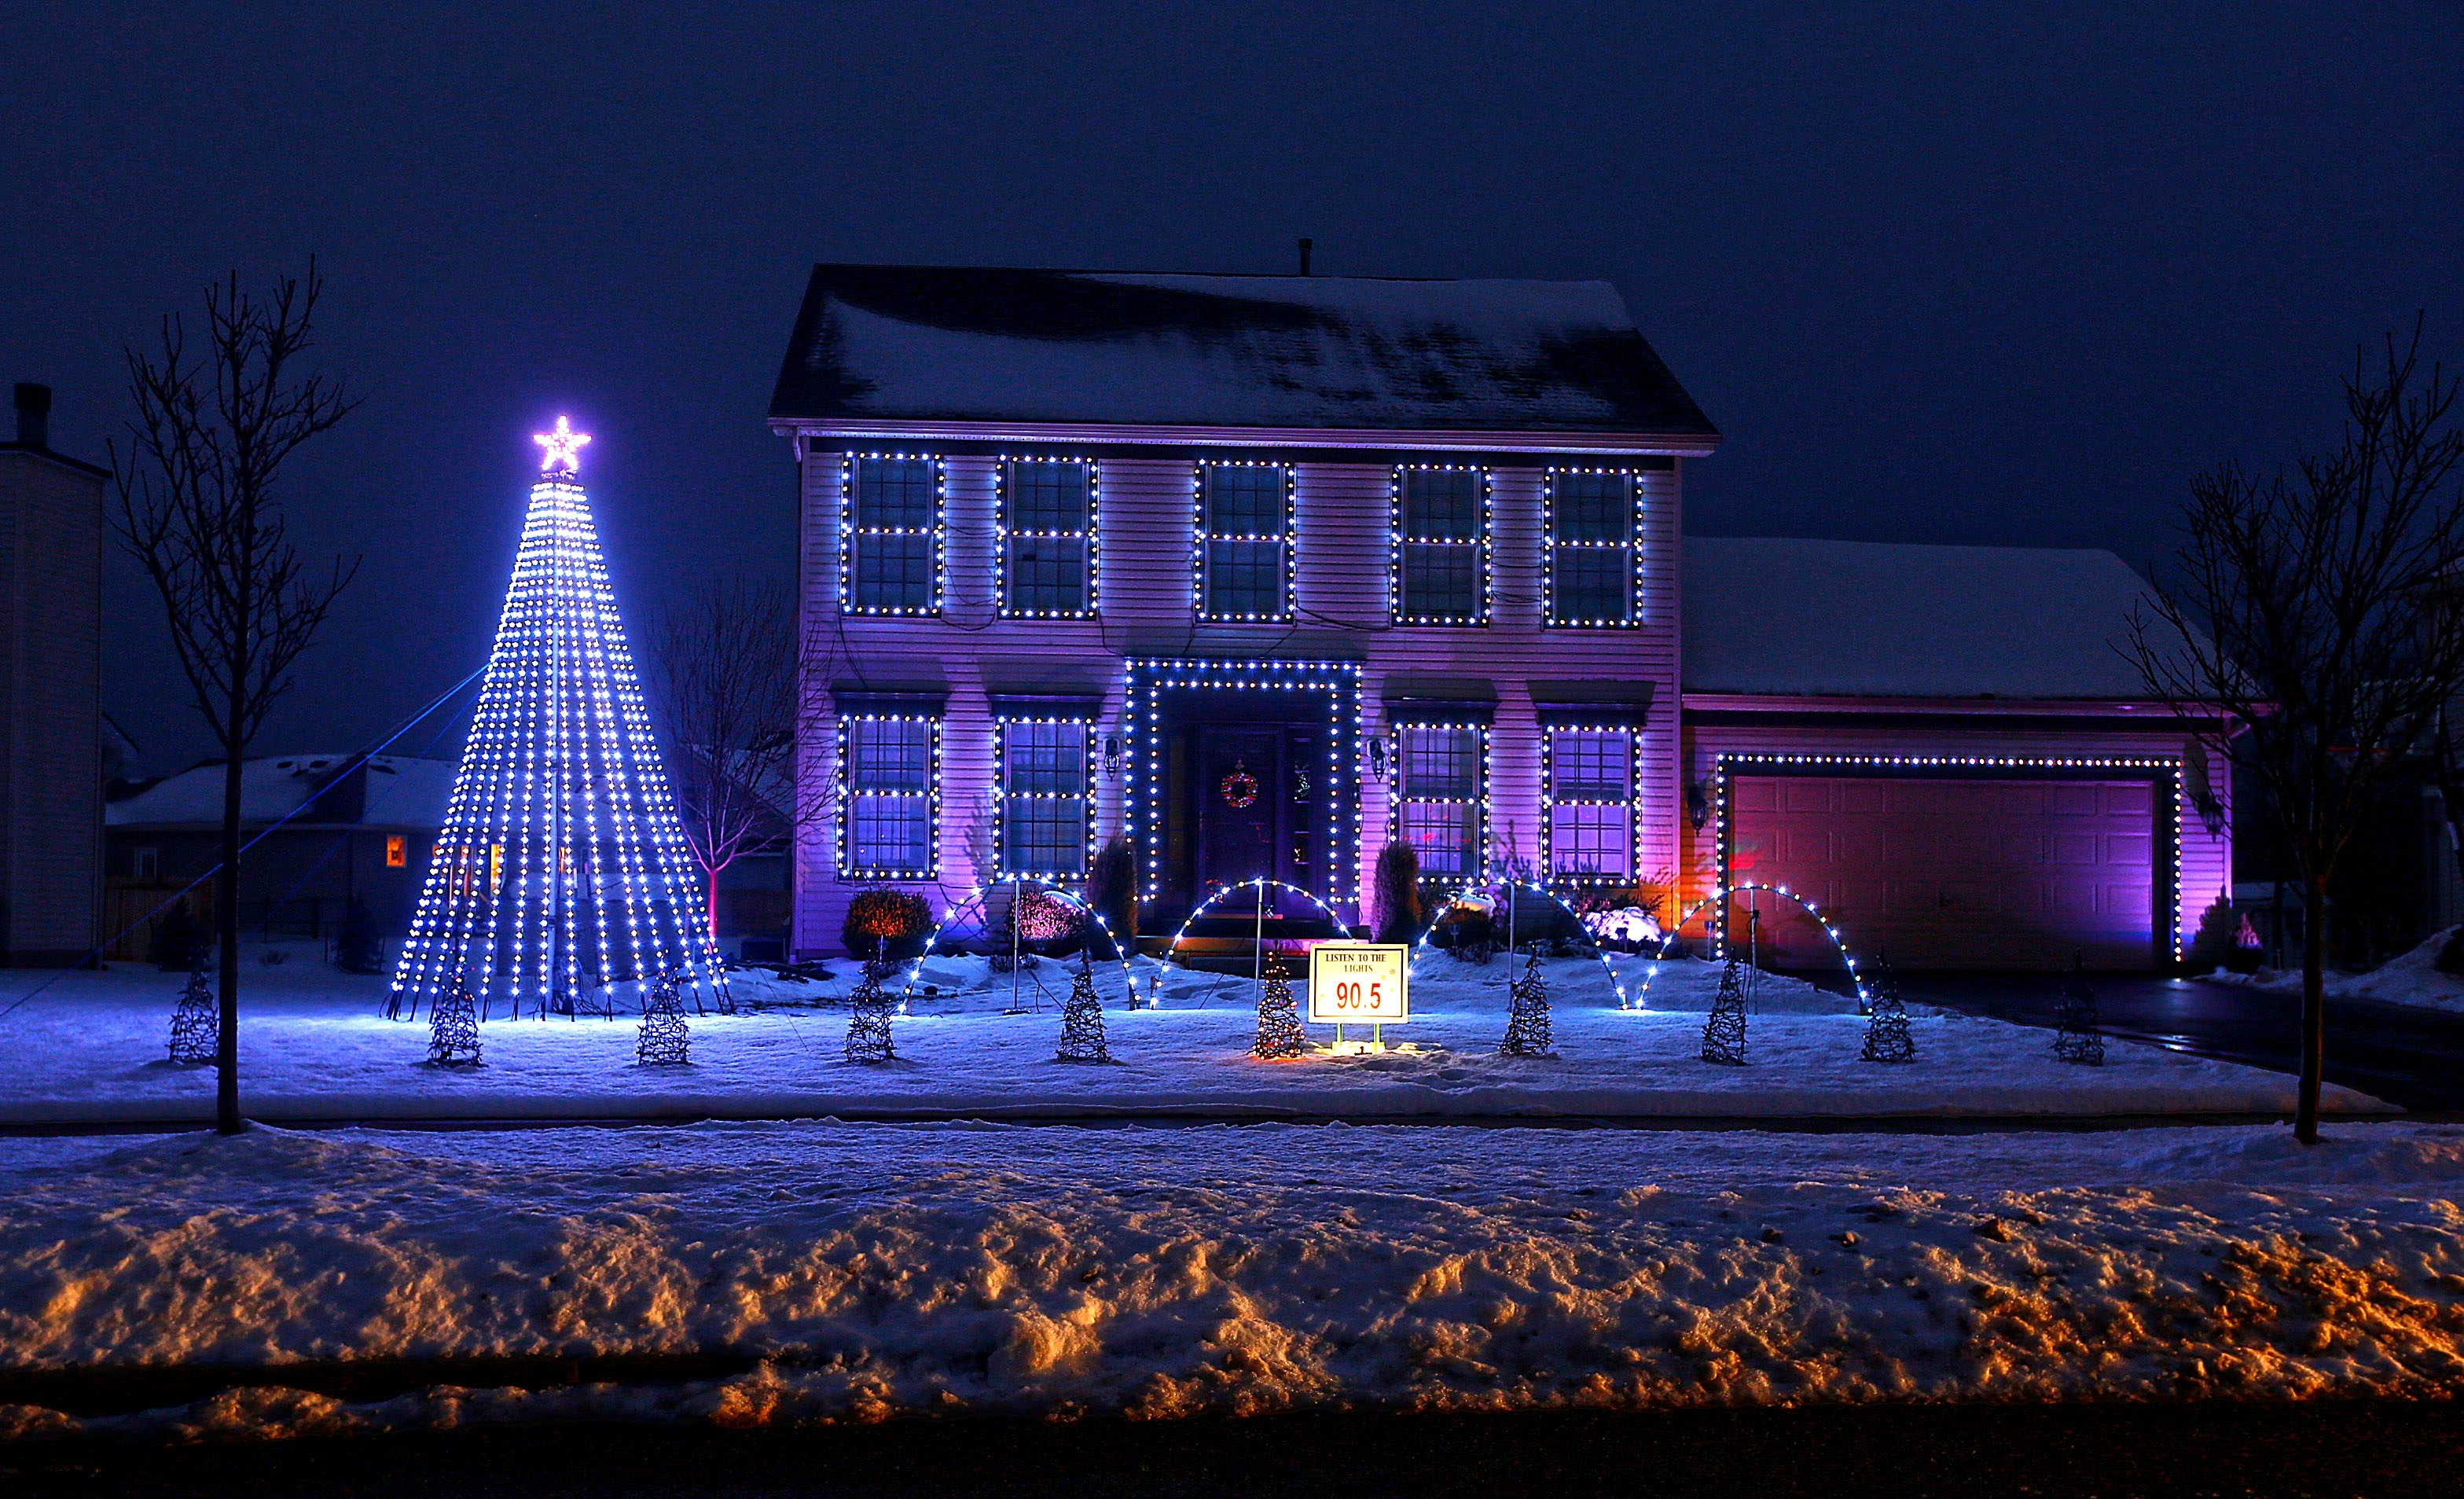 The Powers' home at 6 Red Clover Lane in Lancaster combines lights and sound, bringing holiday cheer to strangers.